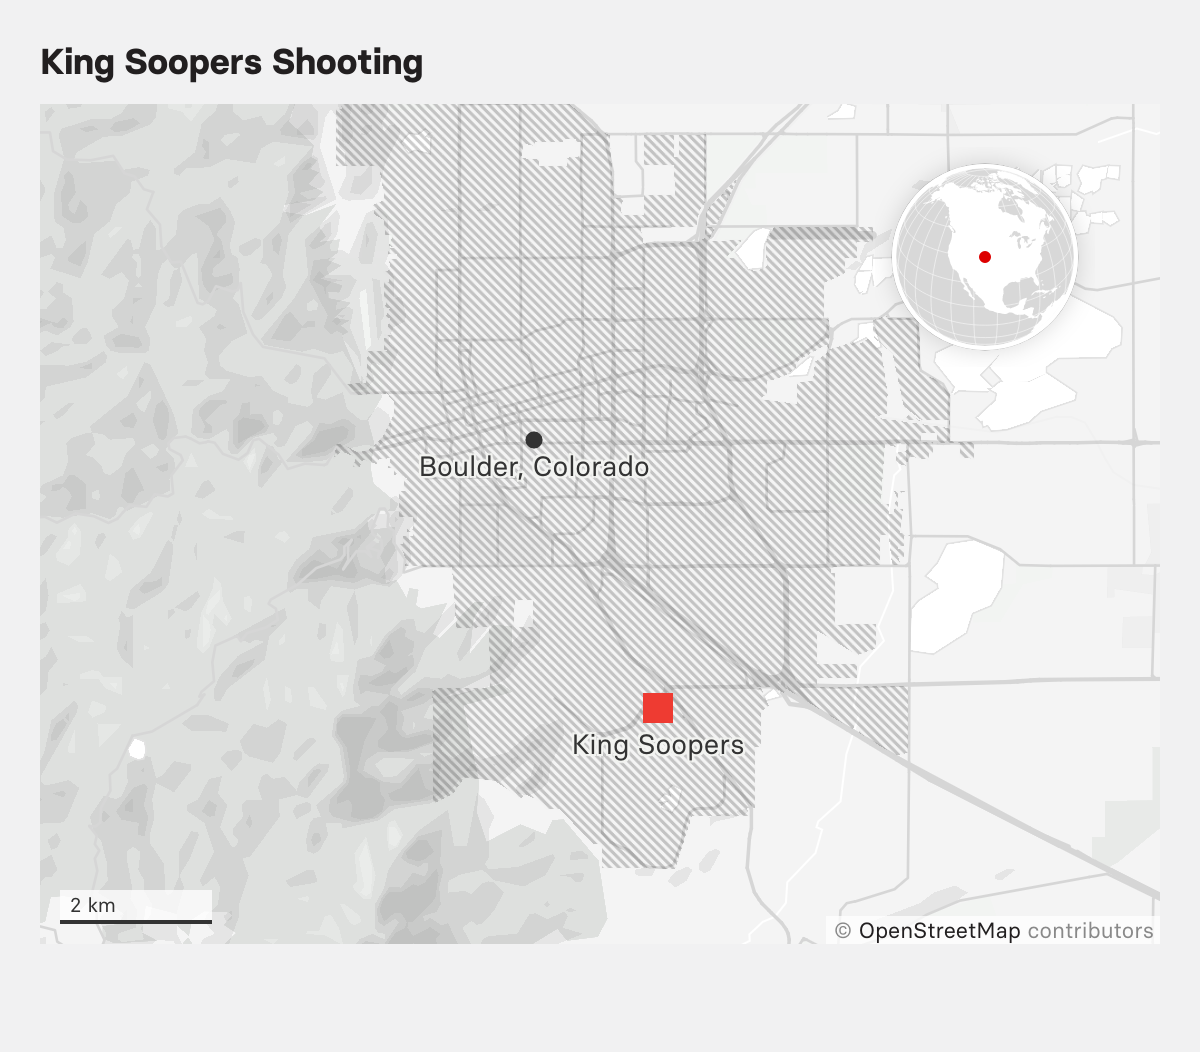 A map shows the location of King Soopers grocery store in the southeast section of the city of Boulder